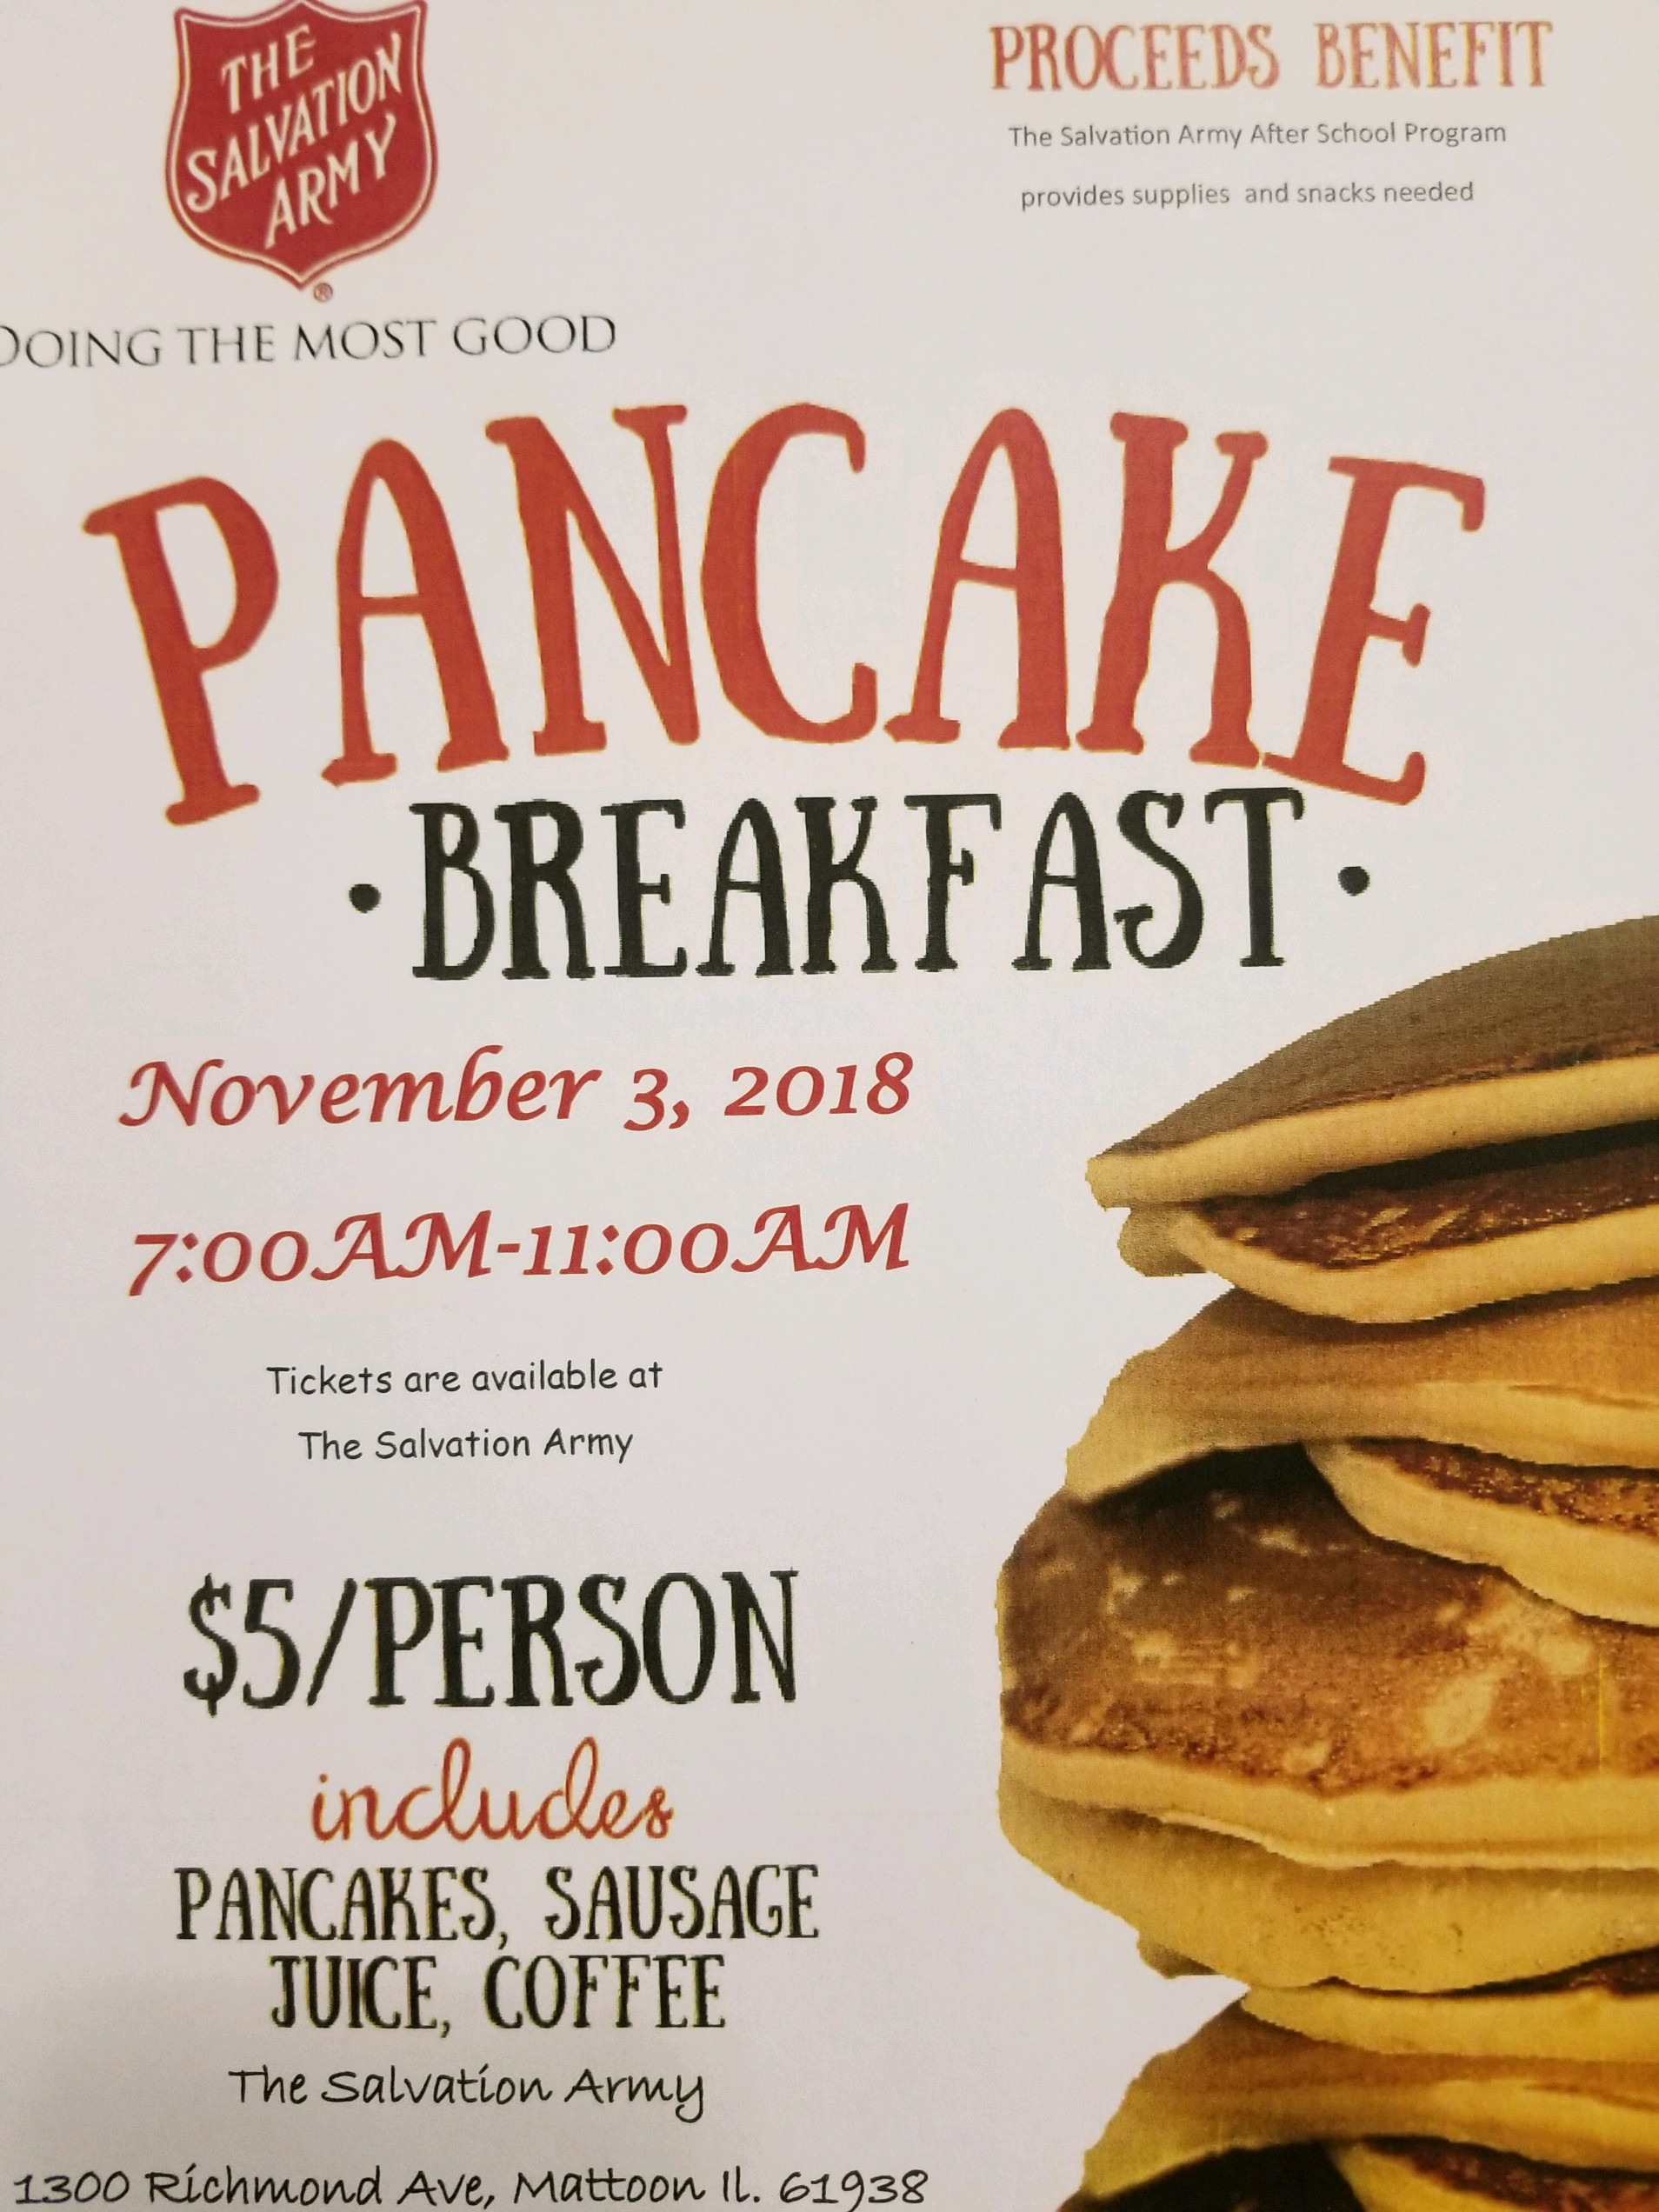 Salvation Army Pancake and Sausage Breakfast